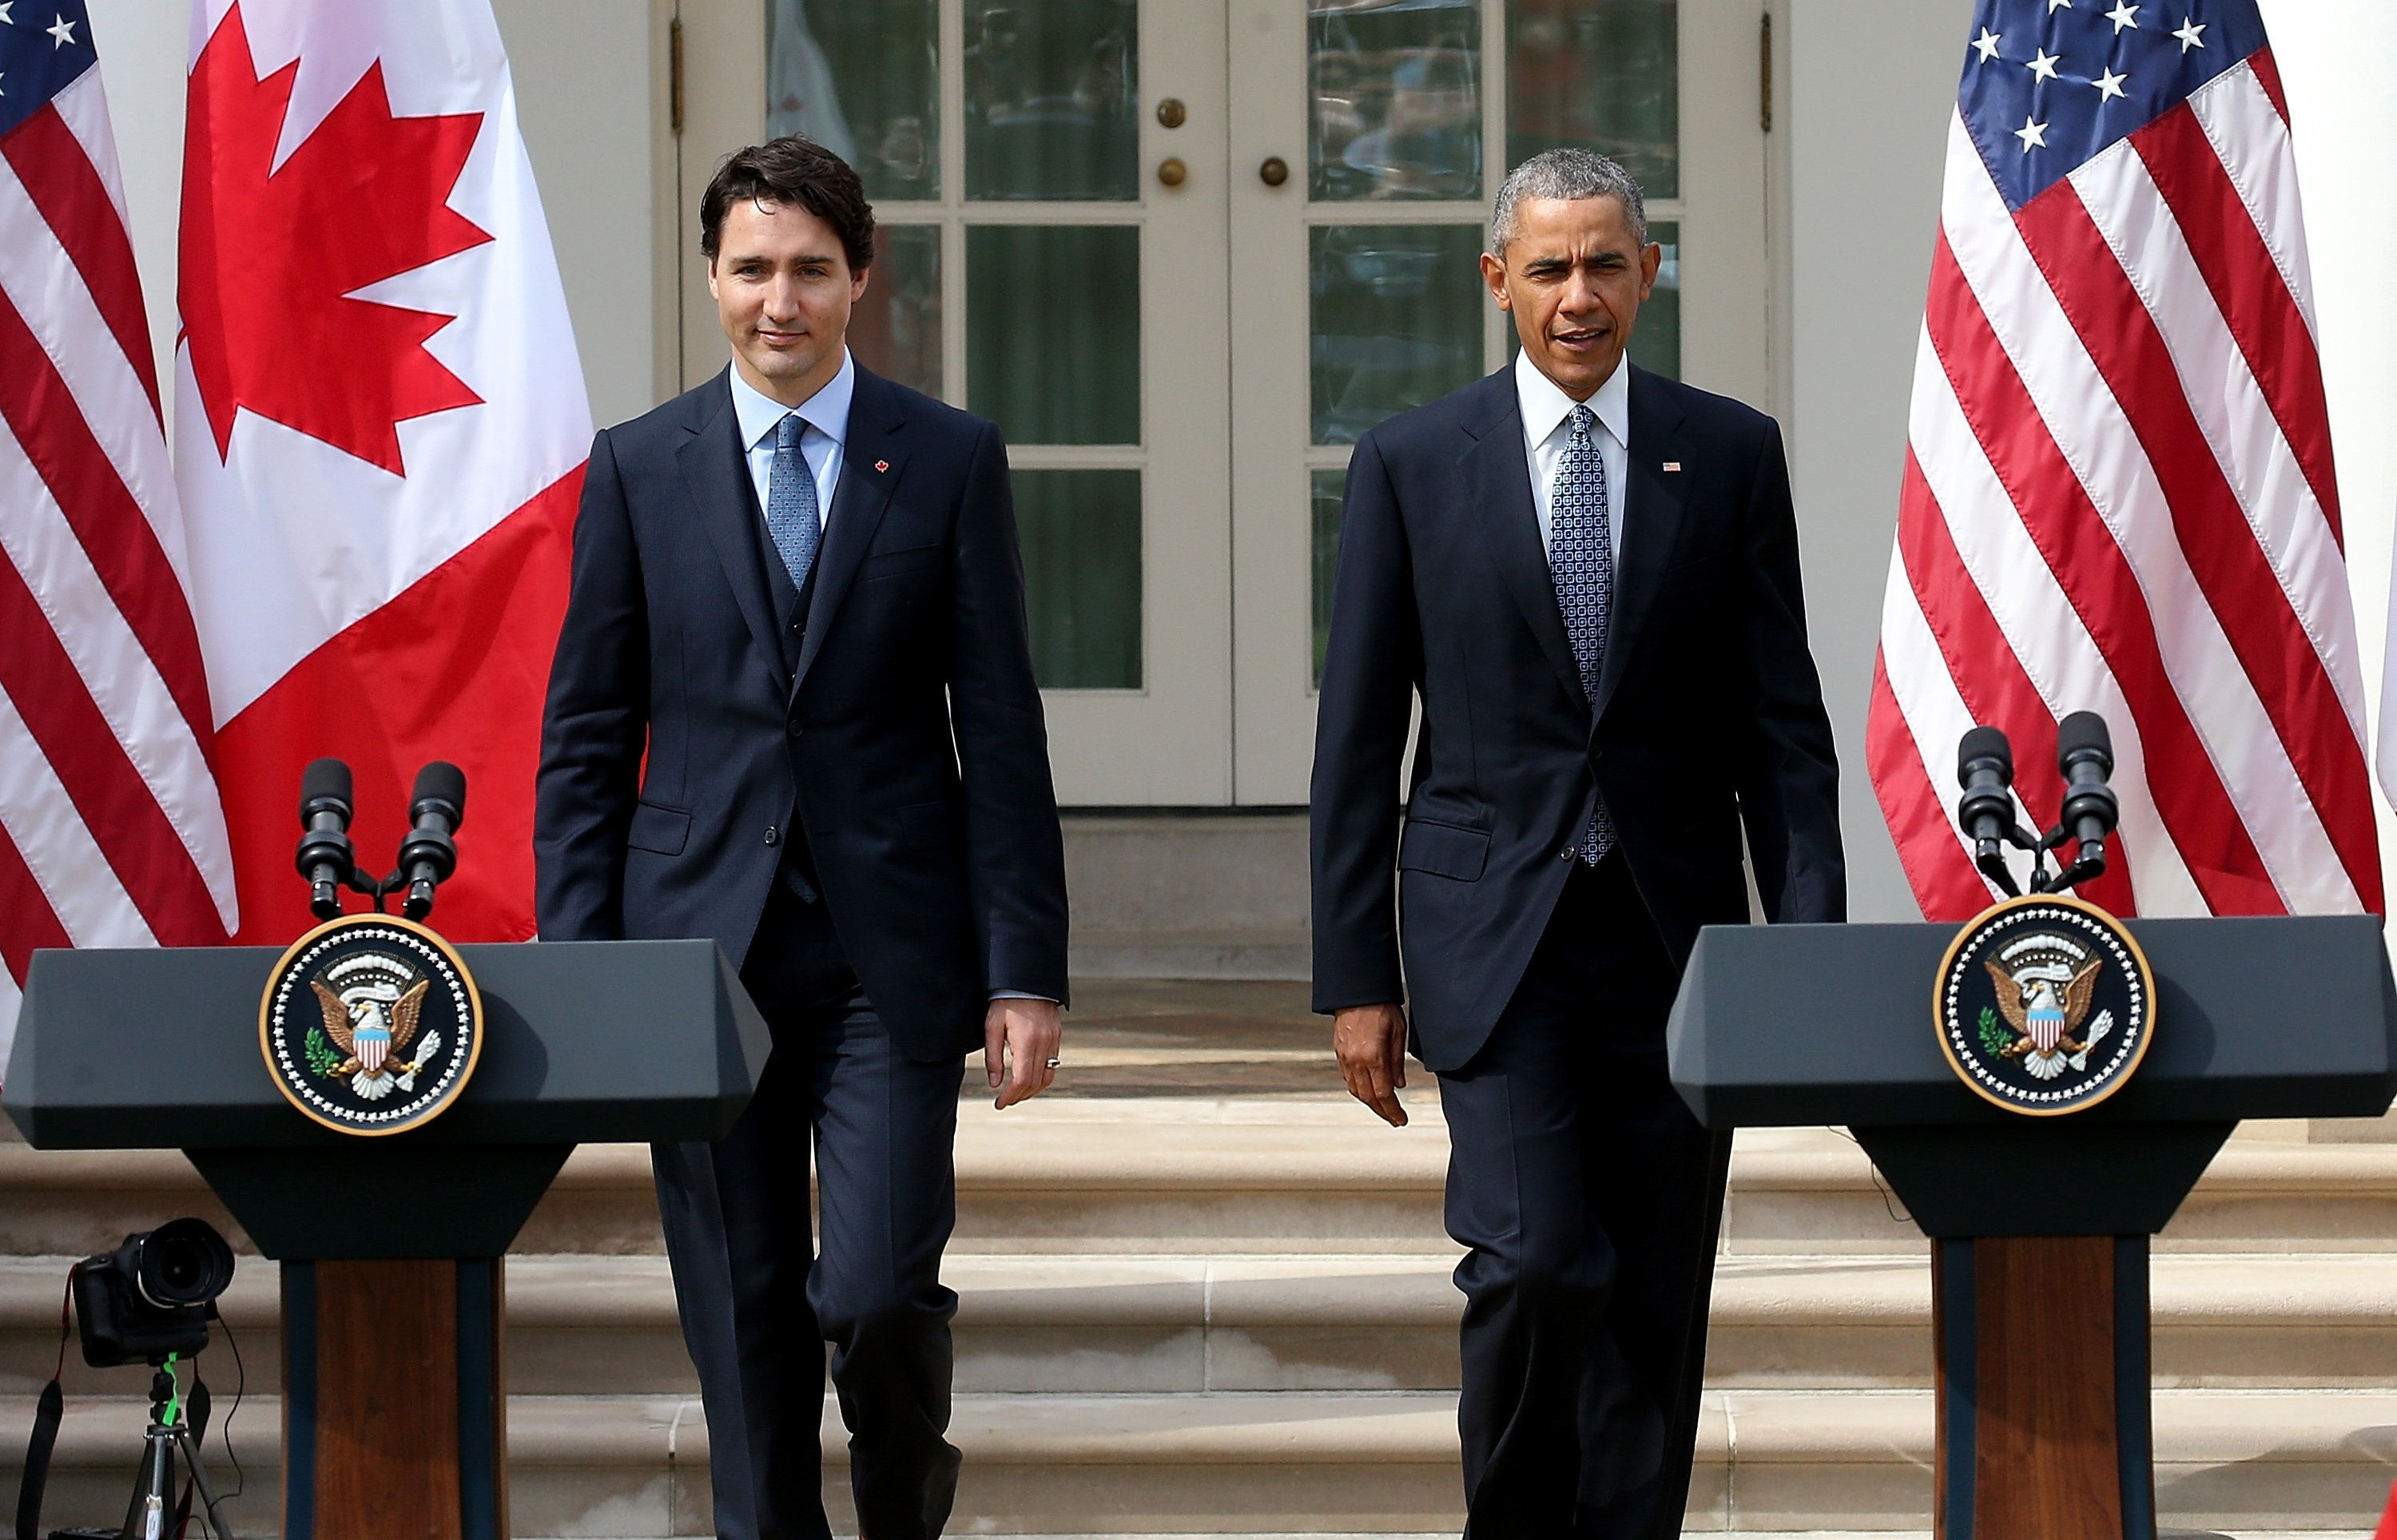 Canadian Prime Minister Justin Trudeau took office in November, replacing frequent White House foe Stephen Harper.